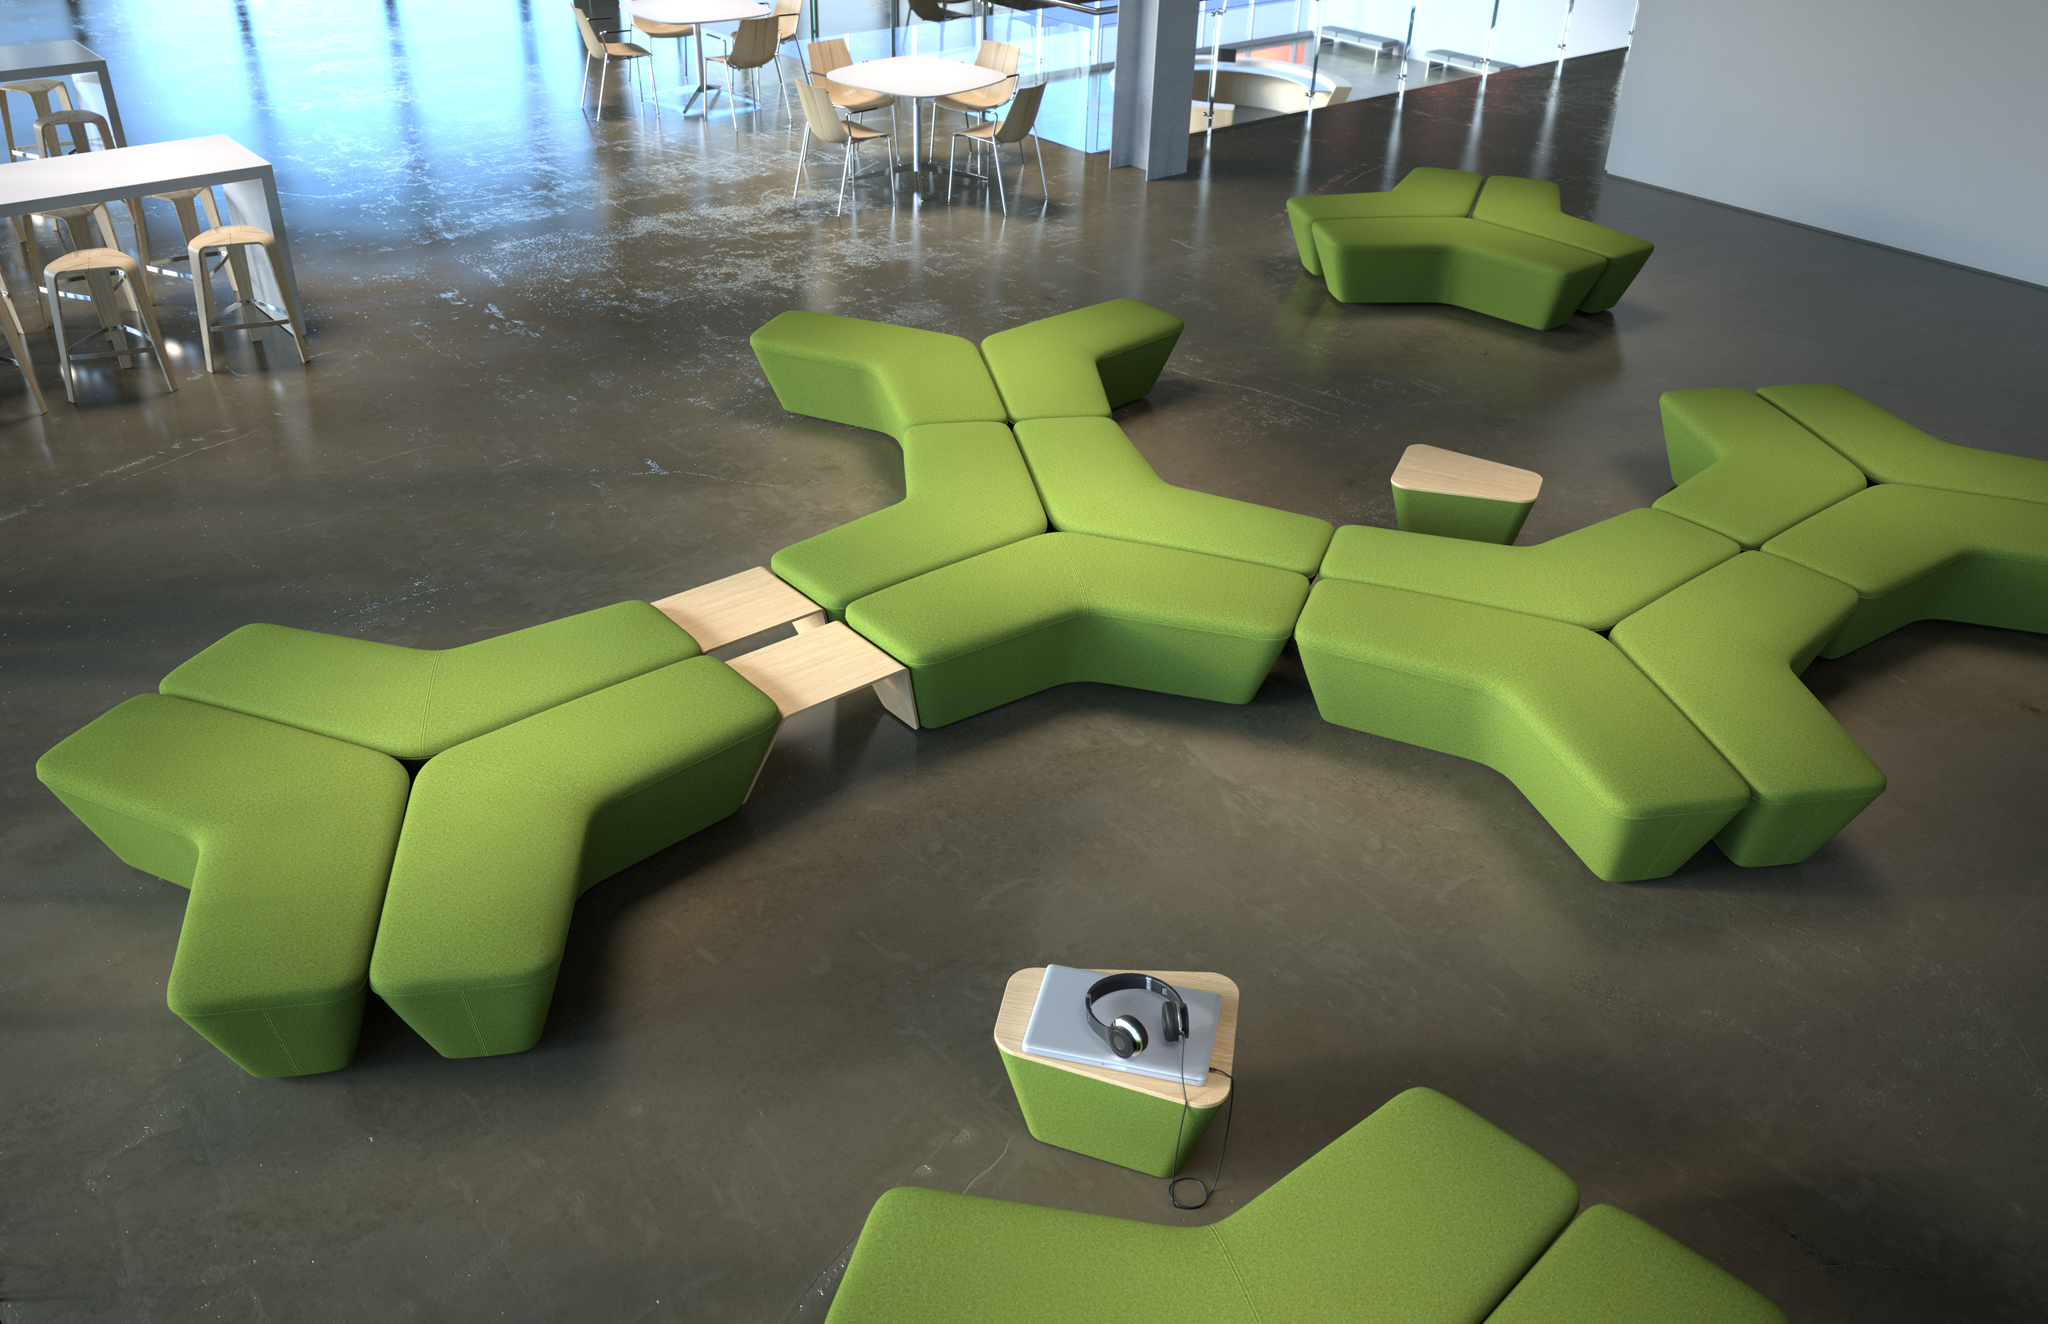 3d rendering of a couch breakout space furniture